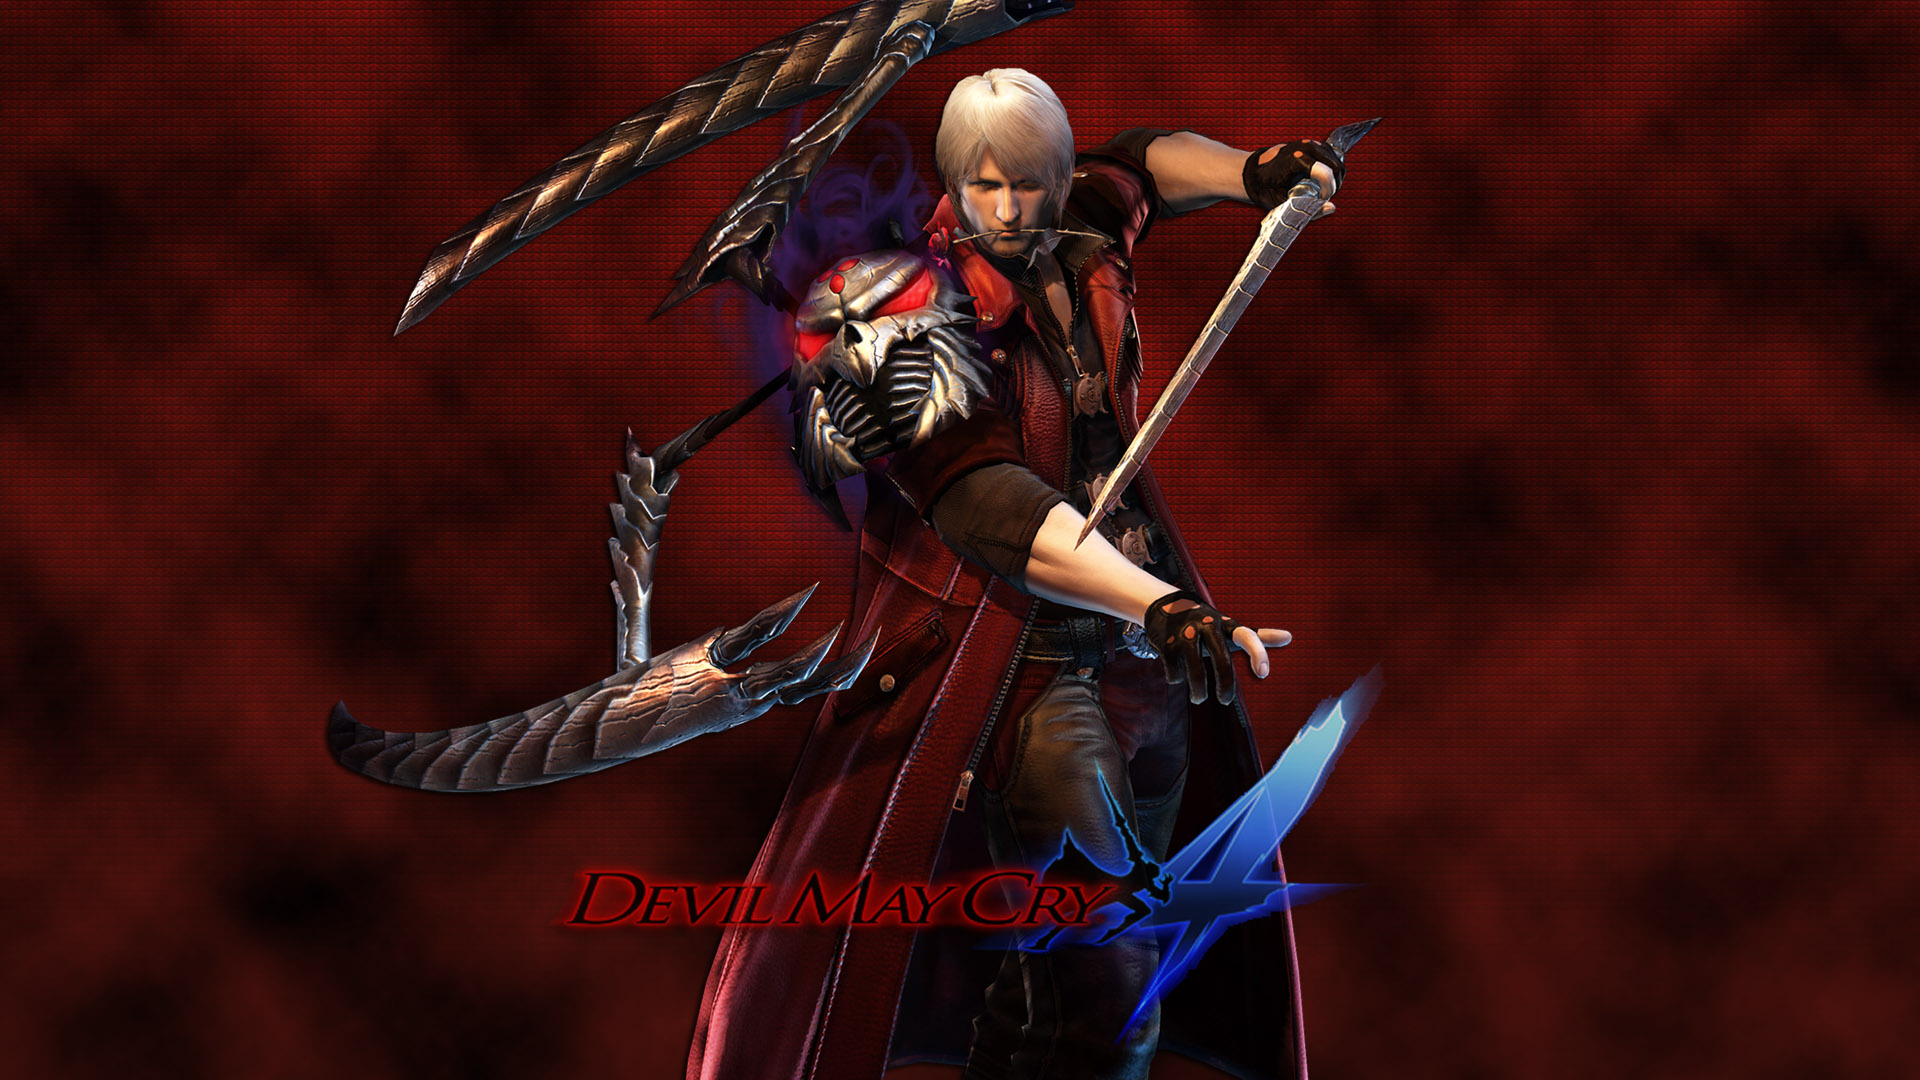 Steam community guide devil may cry 4 advanced dante guide lets get to it voltagebd Images